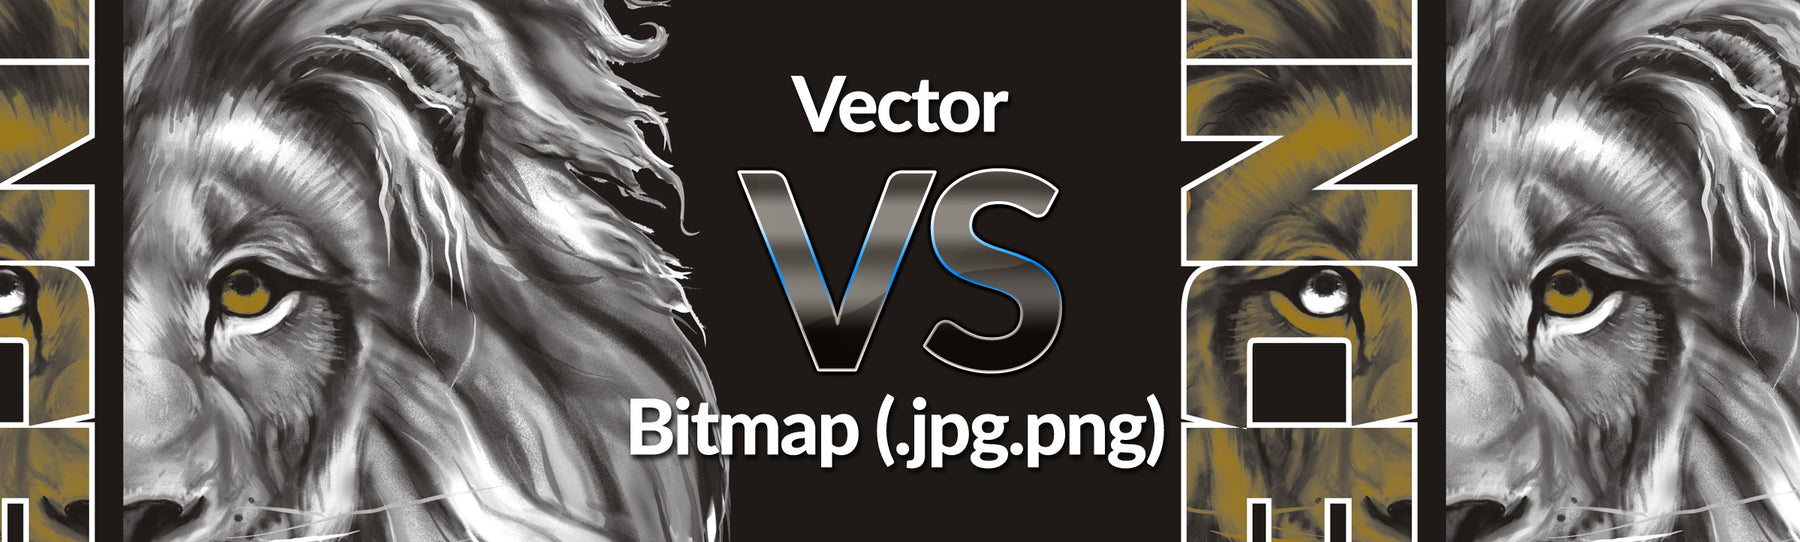 What is a Vector image?